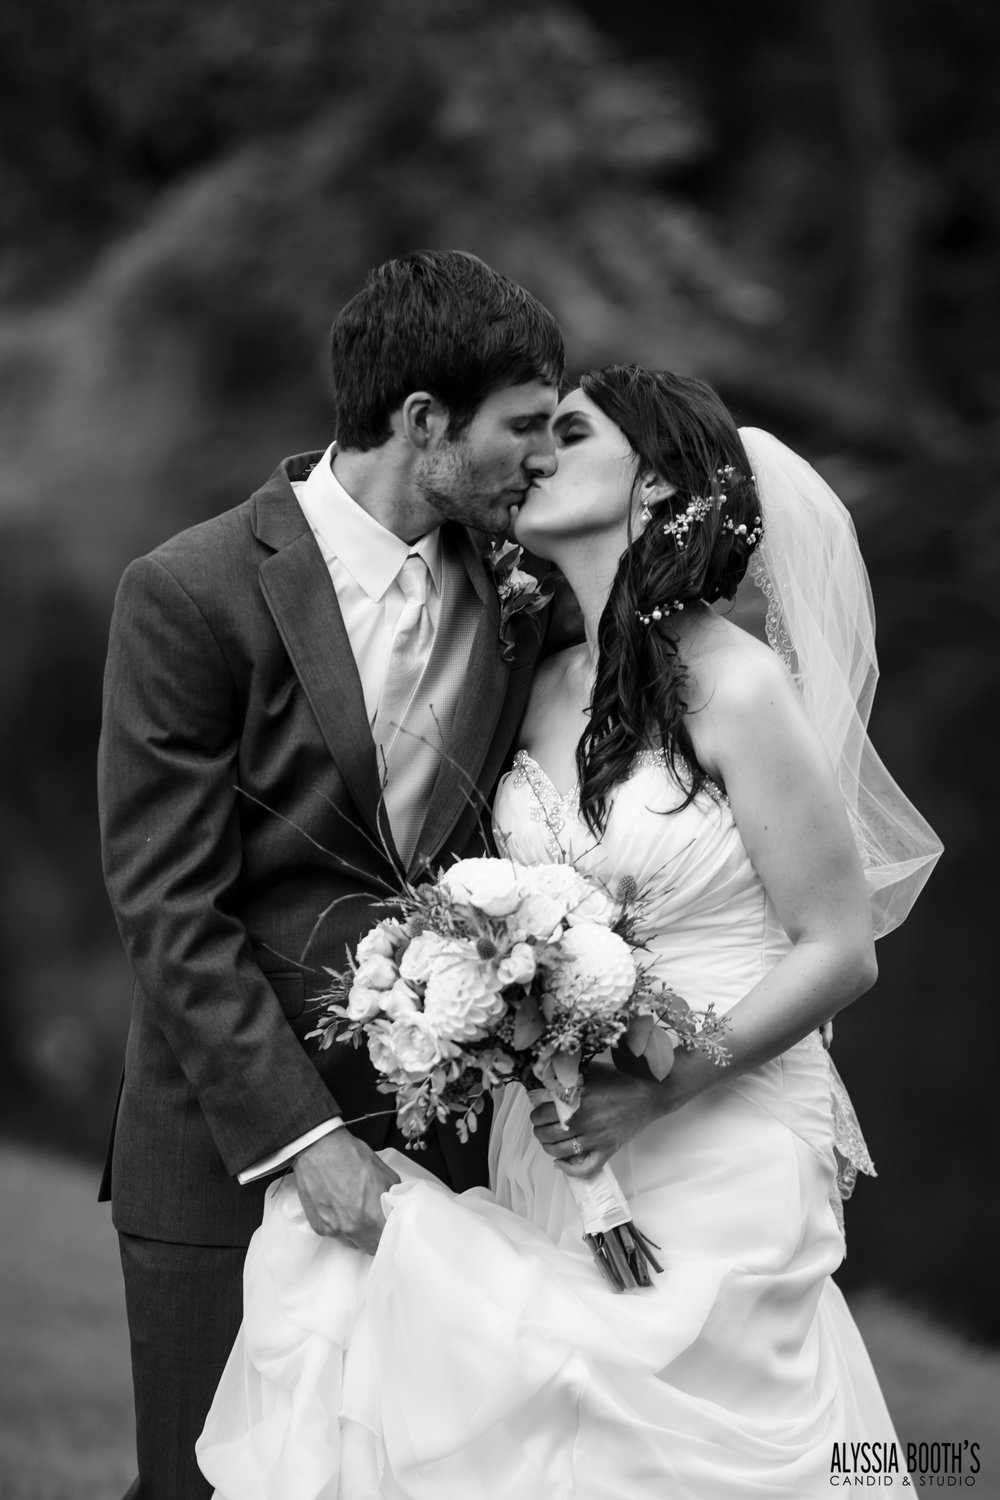 Kiss | Michigan Wedding Photography | Alyssia Booth's Candid & Studio